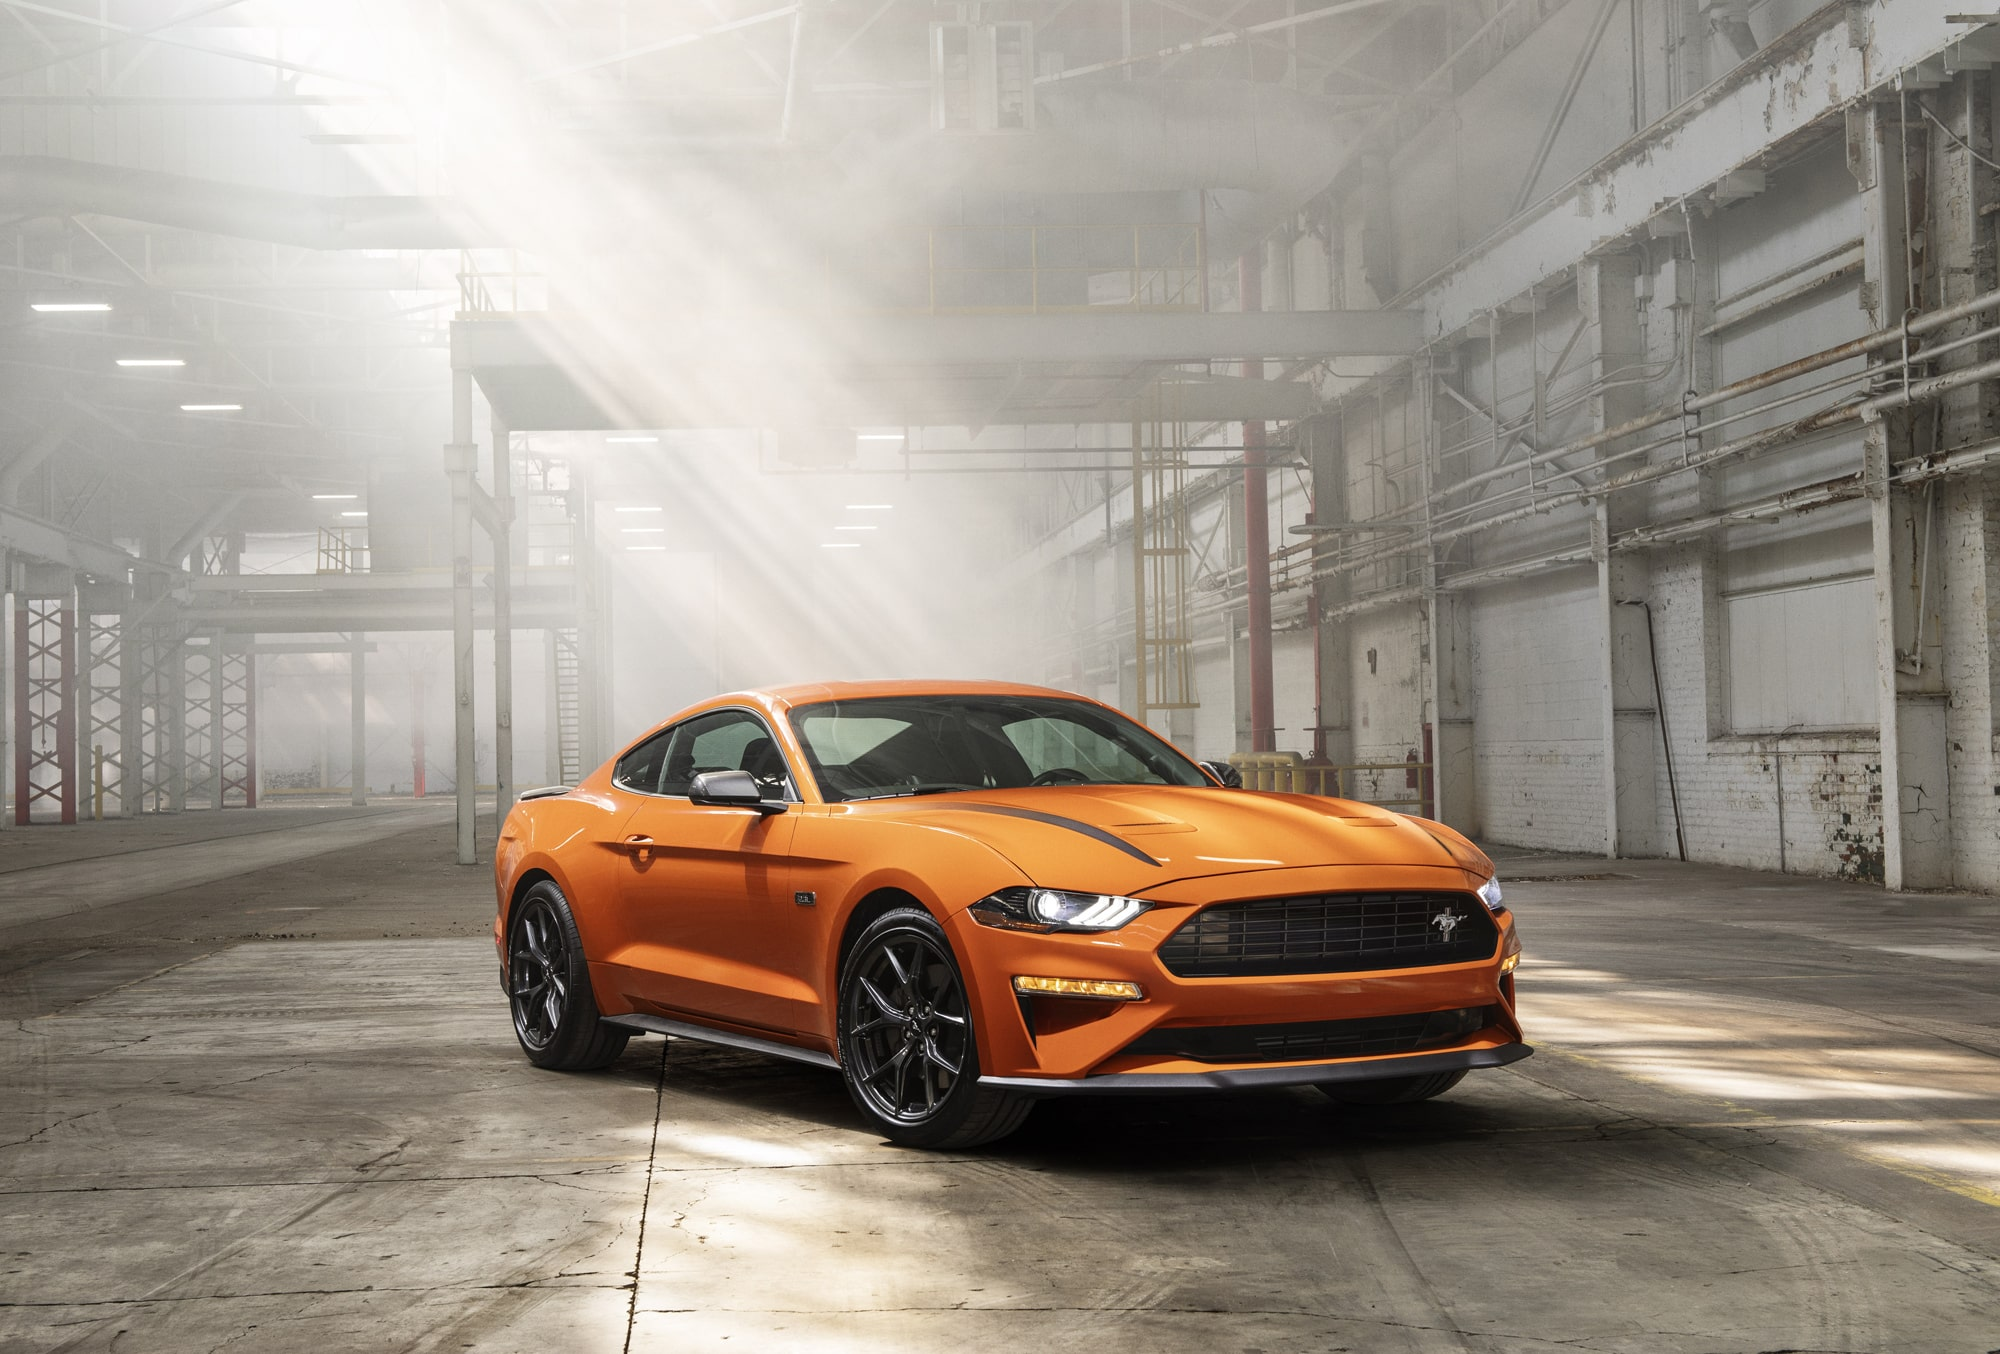 Модель Ford Mustang High Performance получила массу доработок